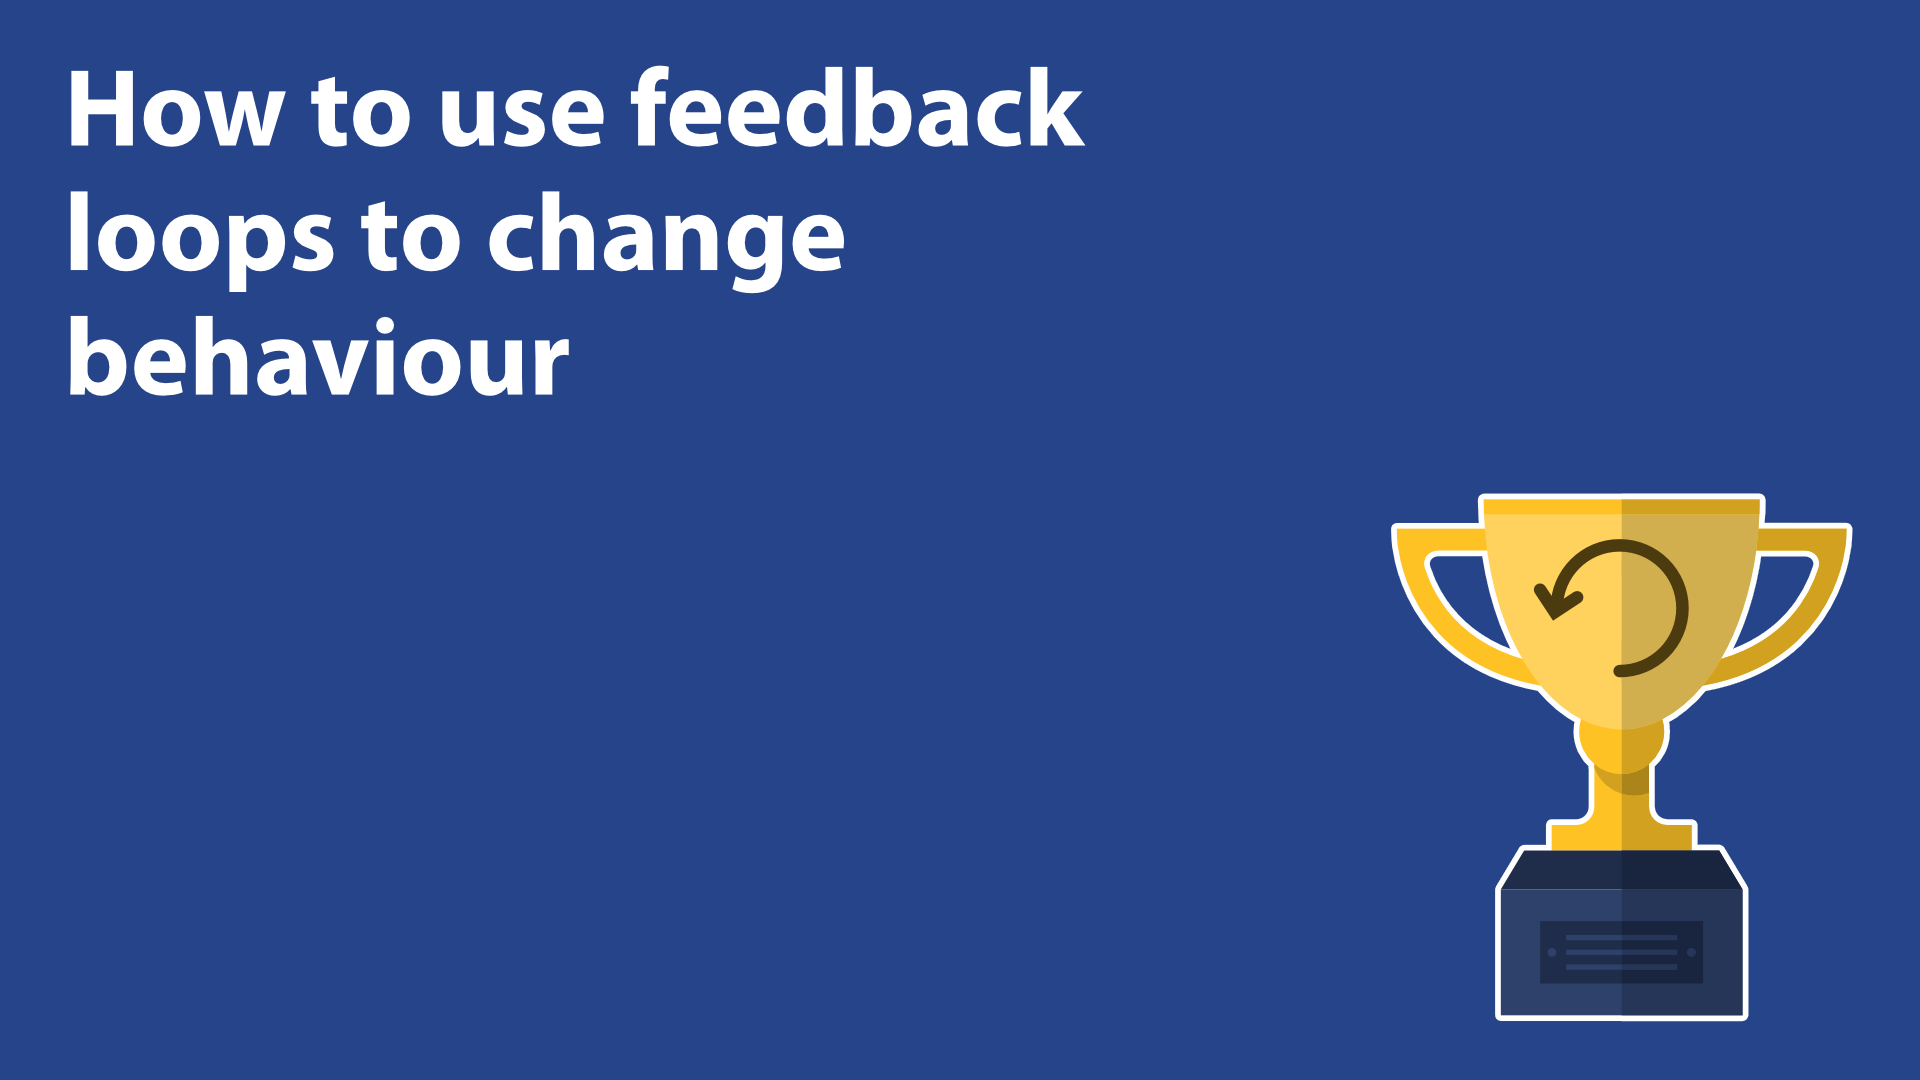 How To Use Feedback Loops To Change Behaviour image